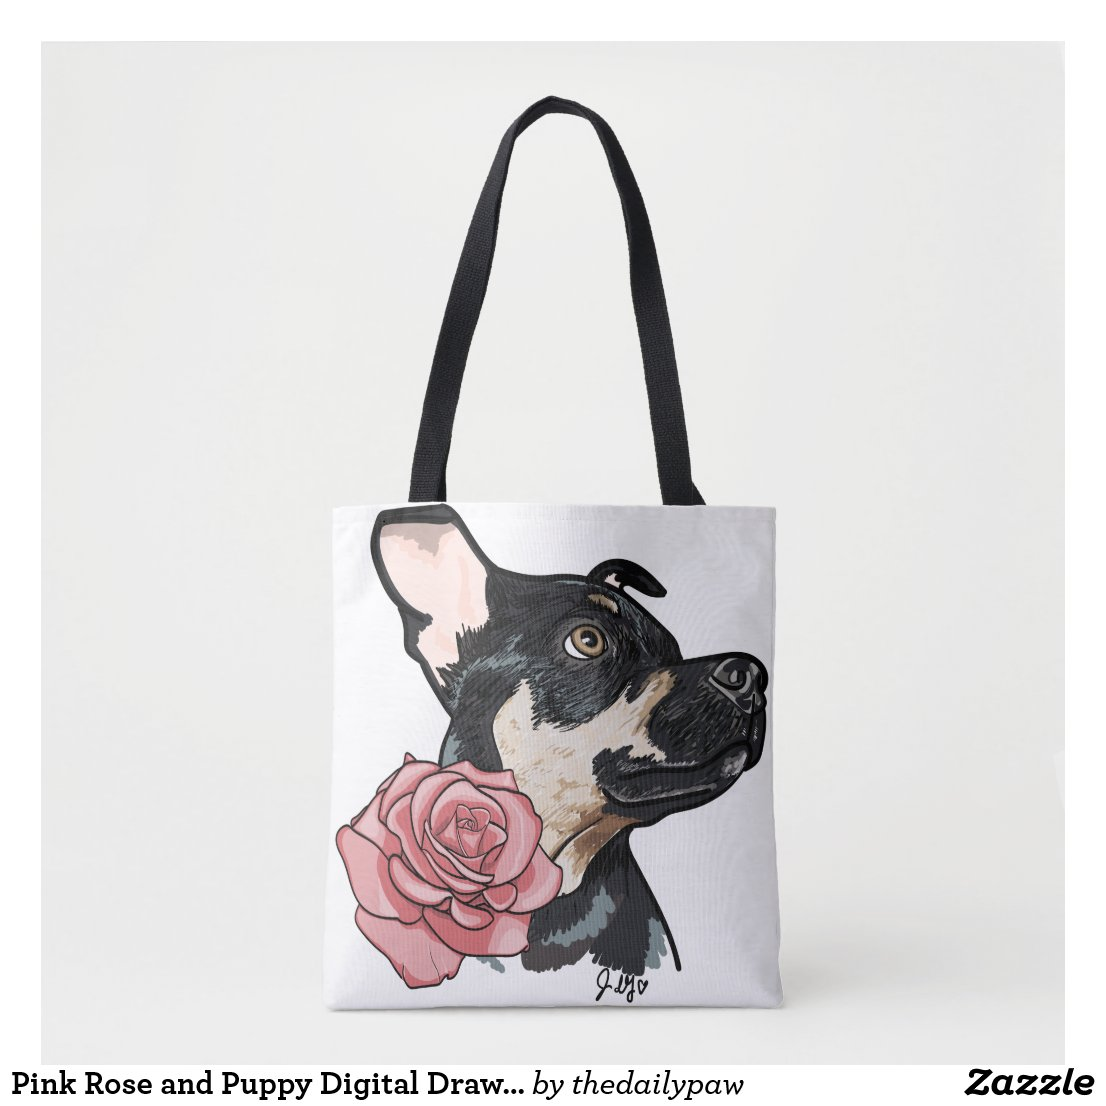 Pink Rose and Puppy Digital Drawing Tote Bag